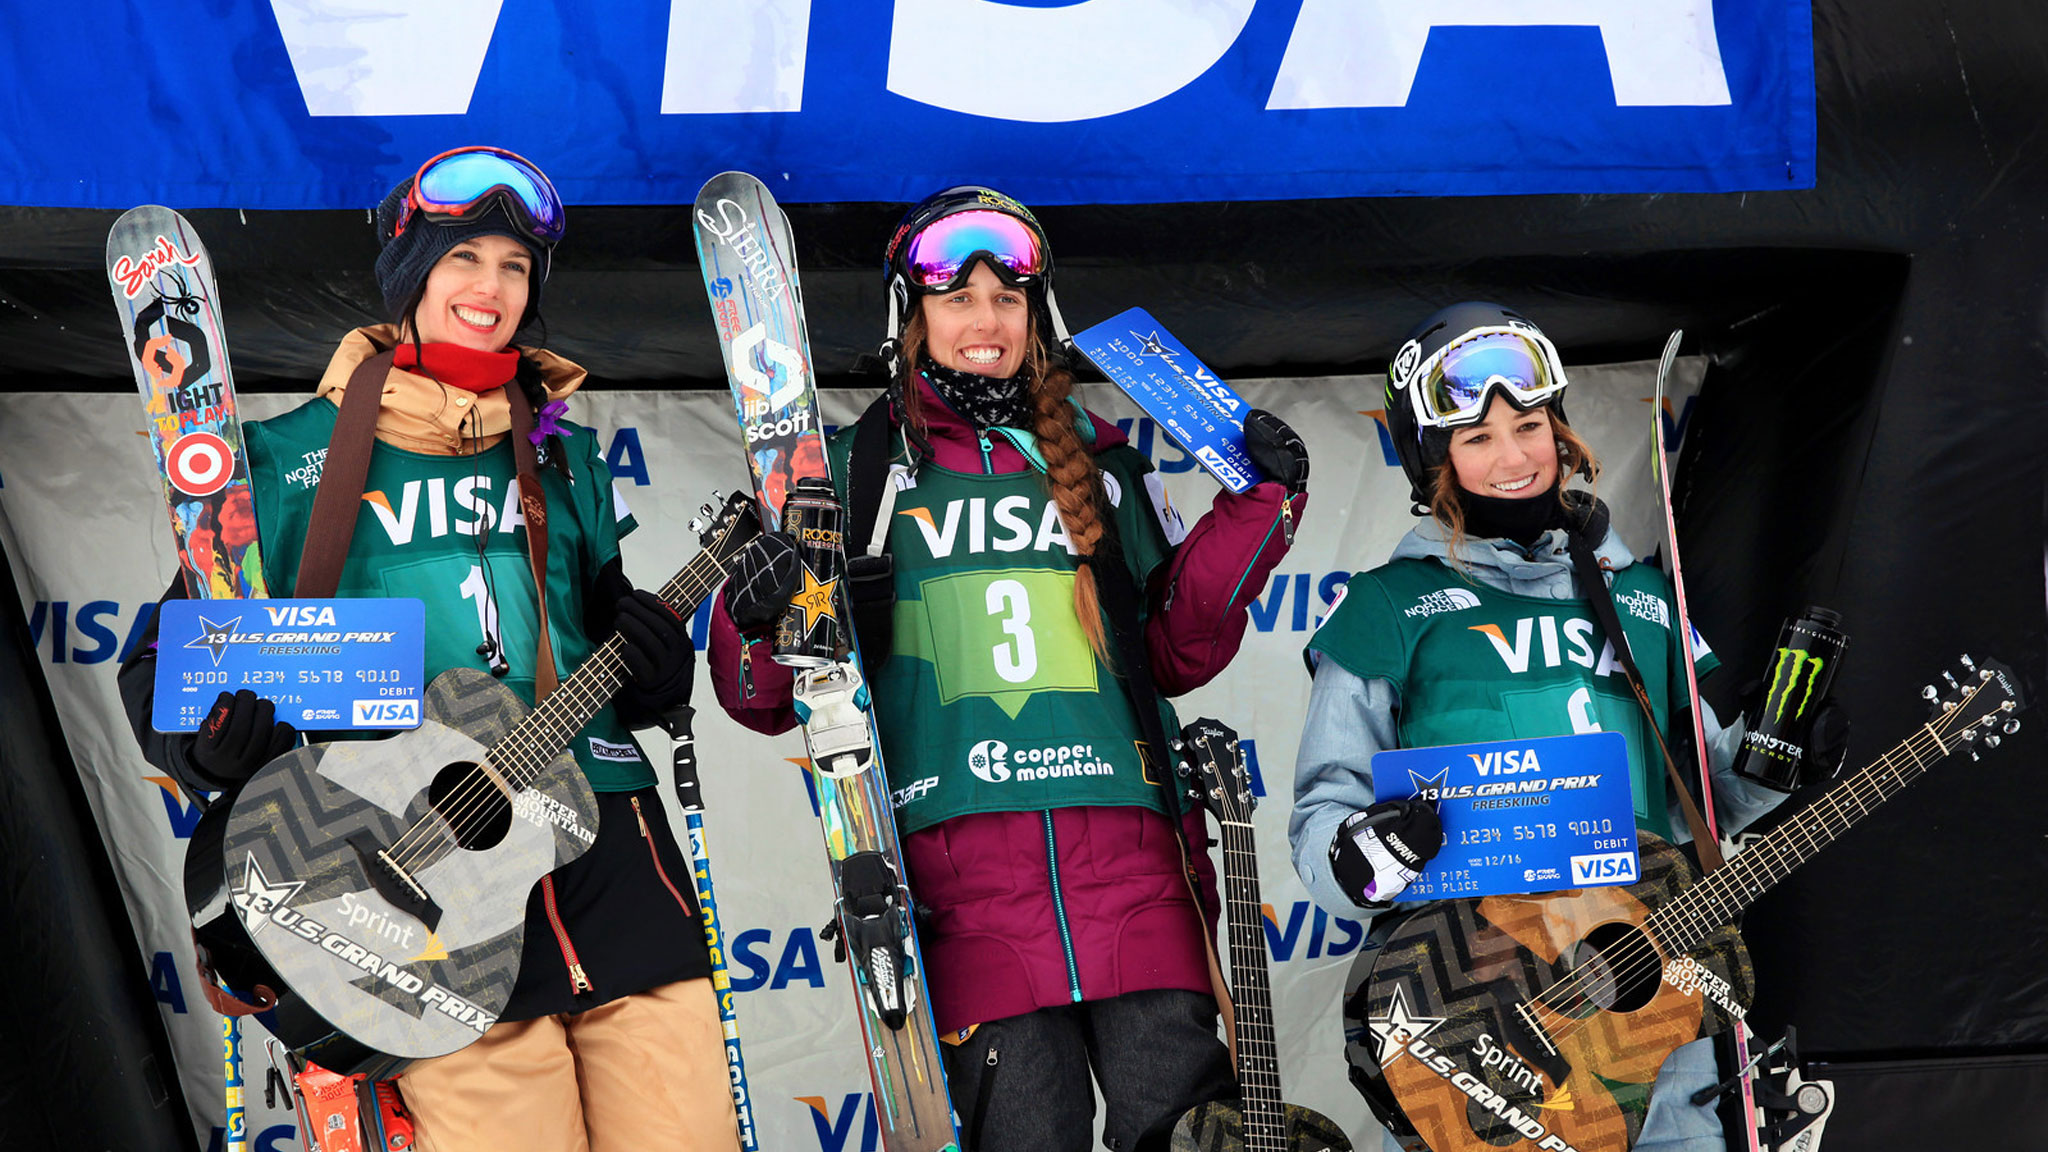 Maddie Bowman took the top spot for women's halfpipe, followed by Roz G and Brita Sigourney.